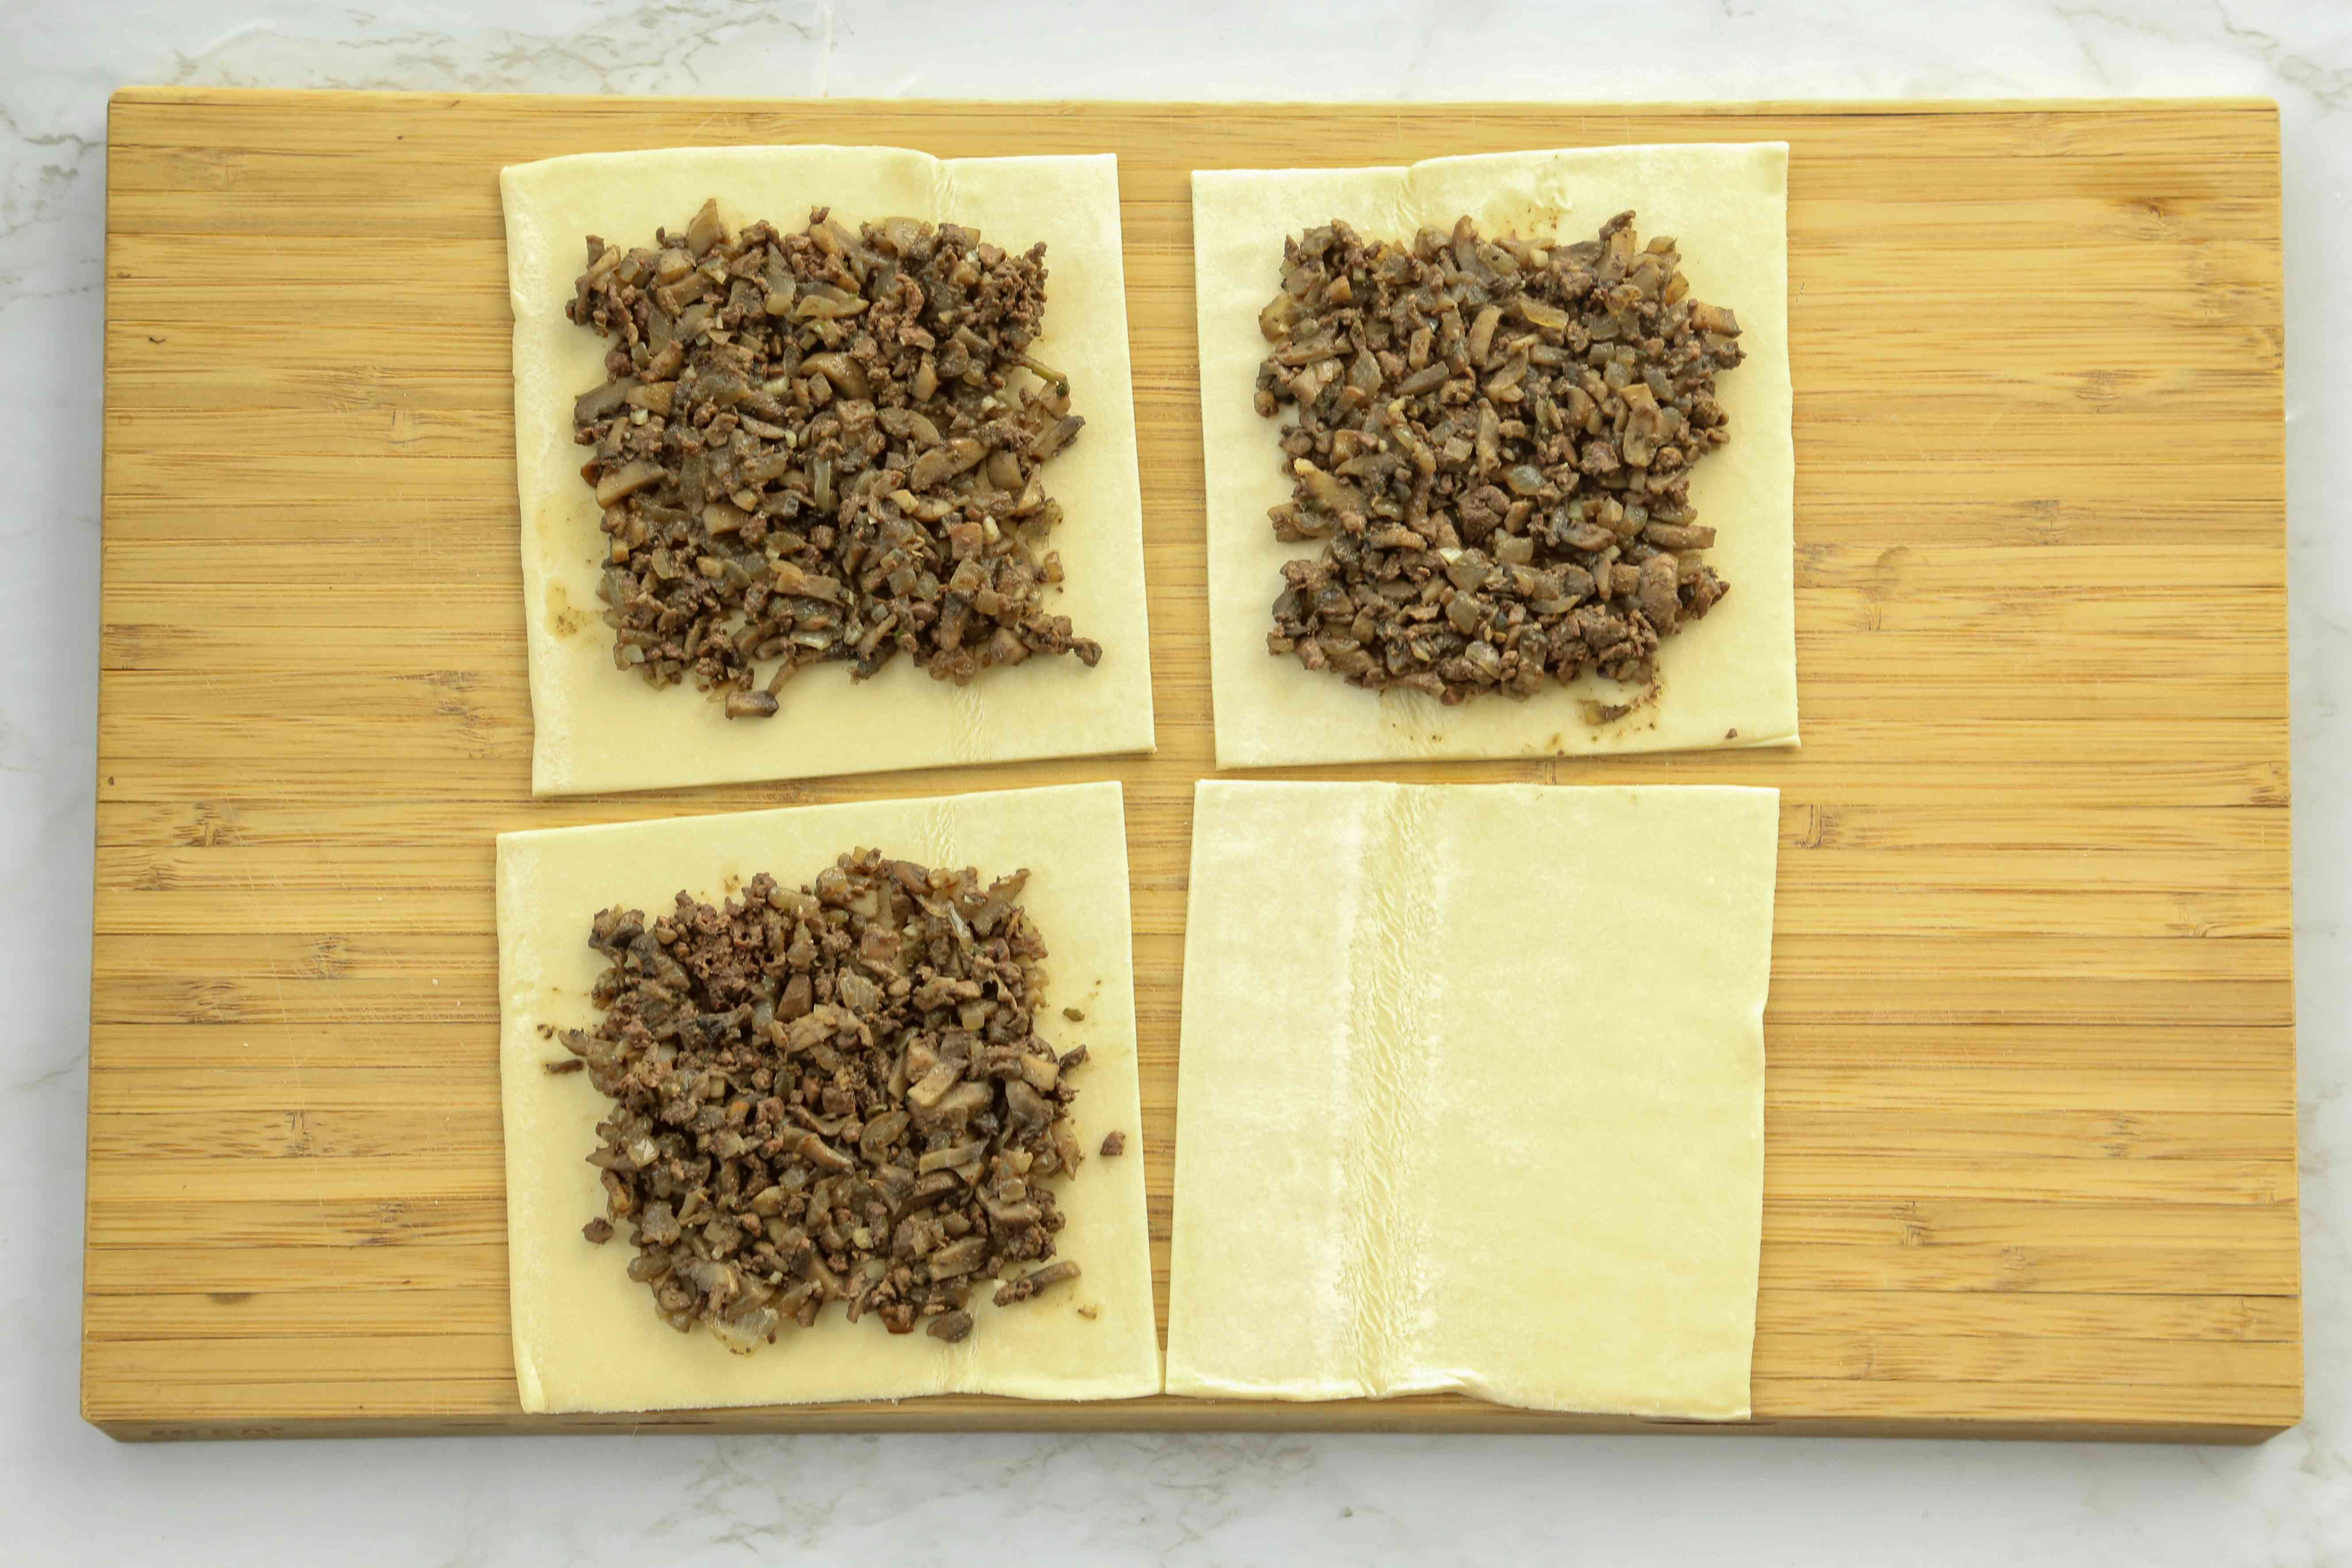 Place mushroom mixture on top of puff pastry